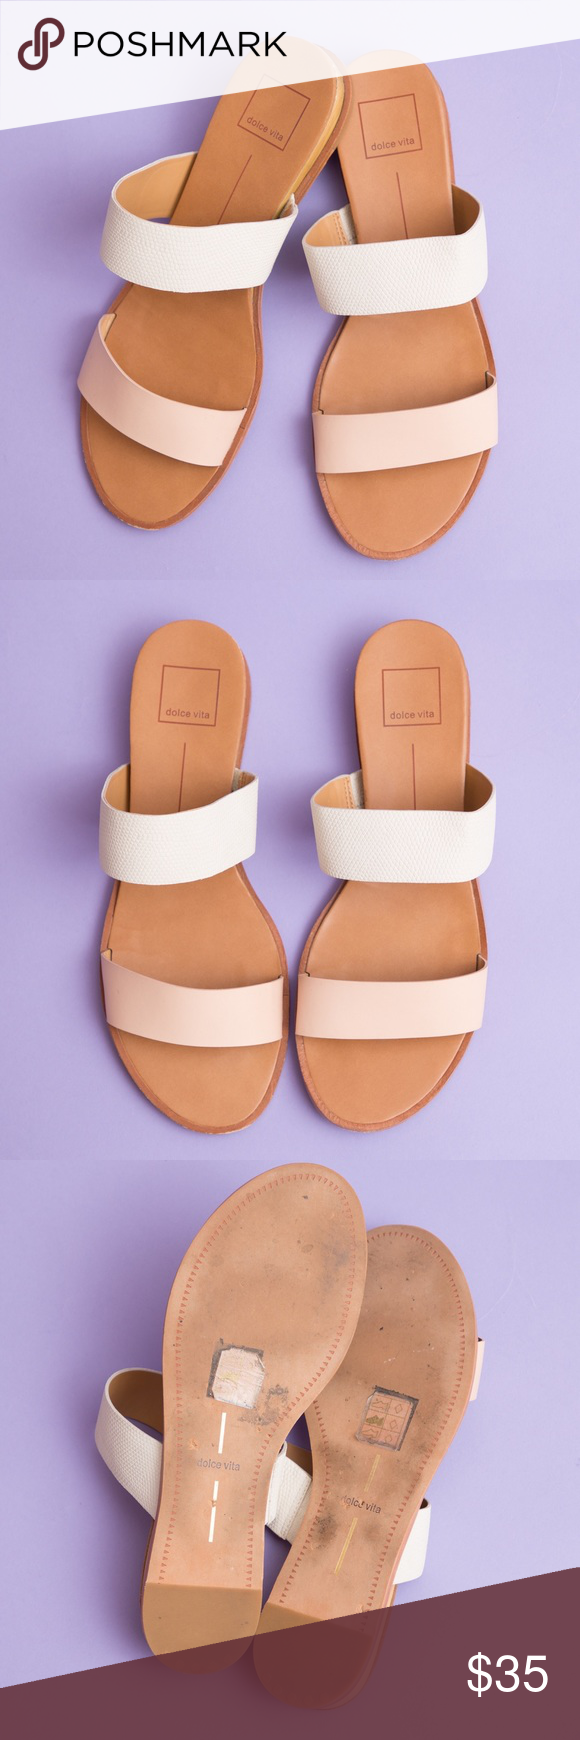 a857093adee Dolce Vita Blush Pink Pris Wedge Sandal Size 8.5 Like new- only worn twice